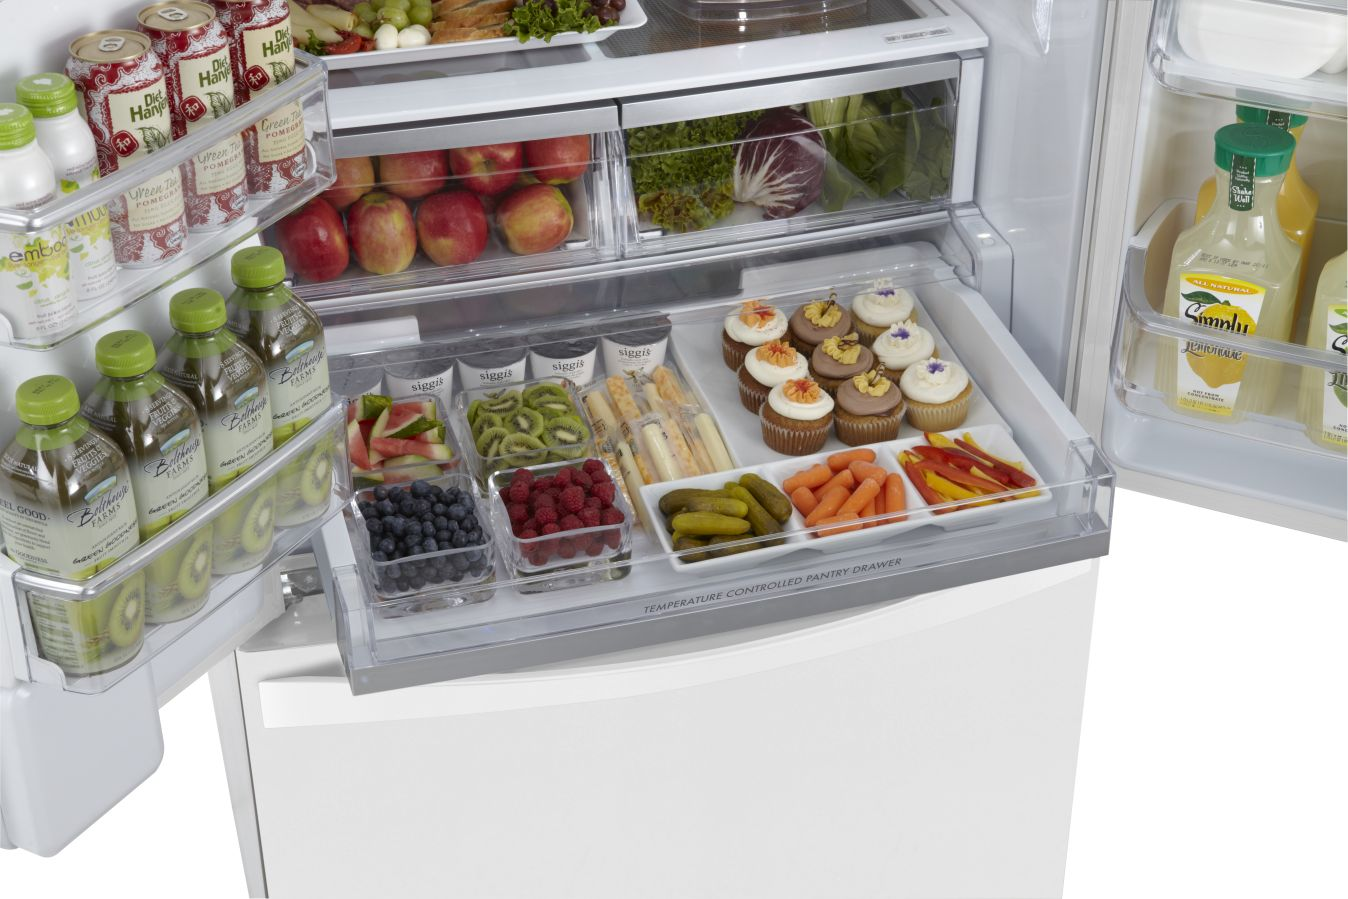 Kenmore Elite 31.0 cu. ft. French Door Bottom-Freezer Refrigerator - White